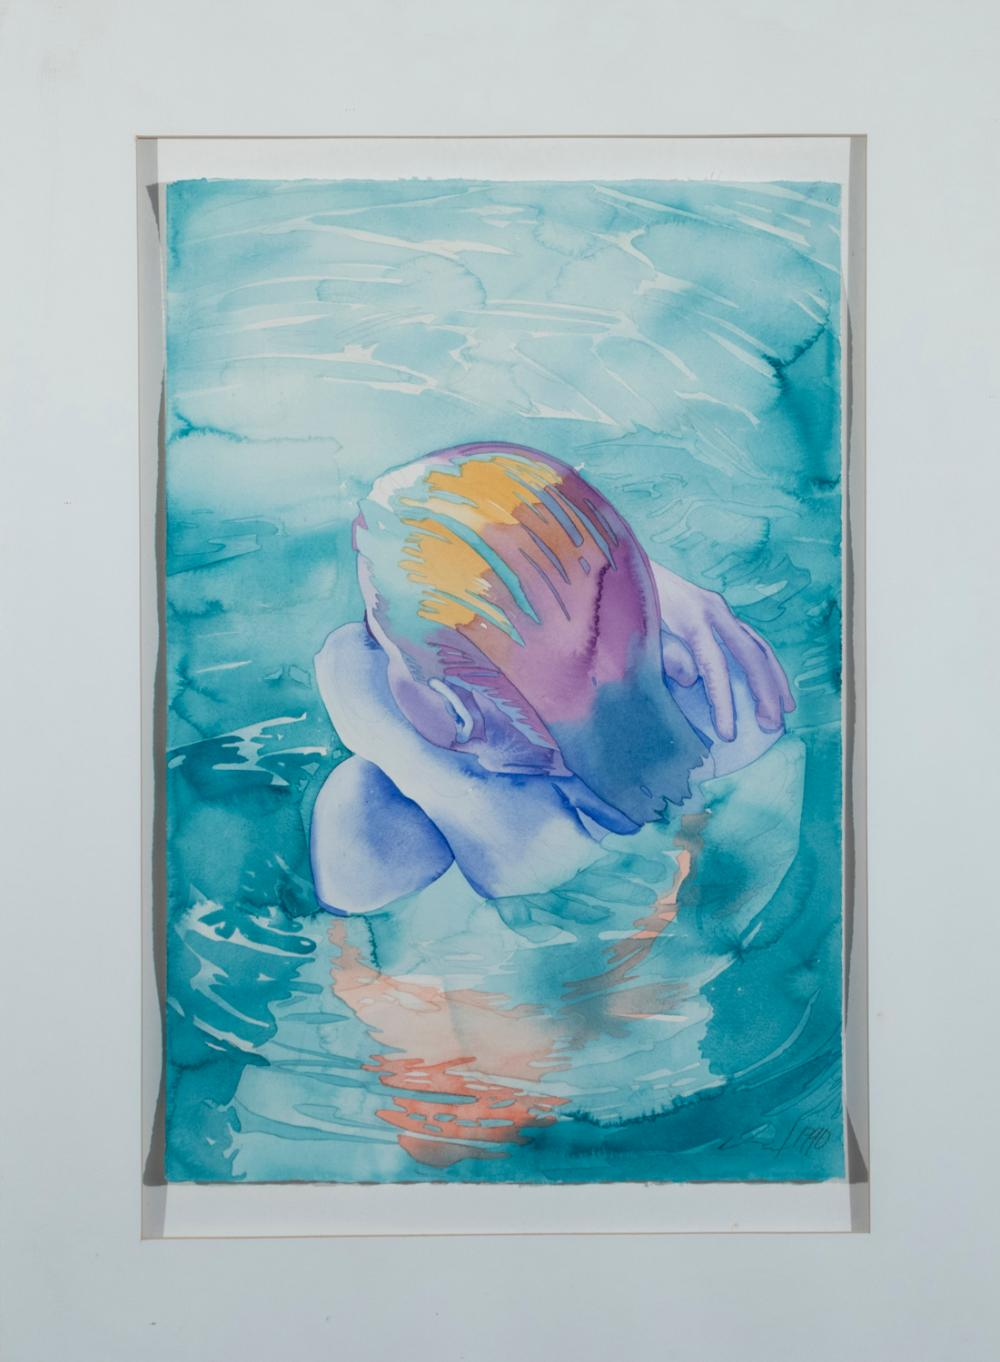 Carol Carter, St. Louis, Swimmer, 1990, watercolor on paper, 22 x 15 inches